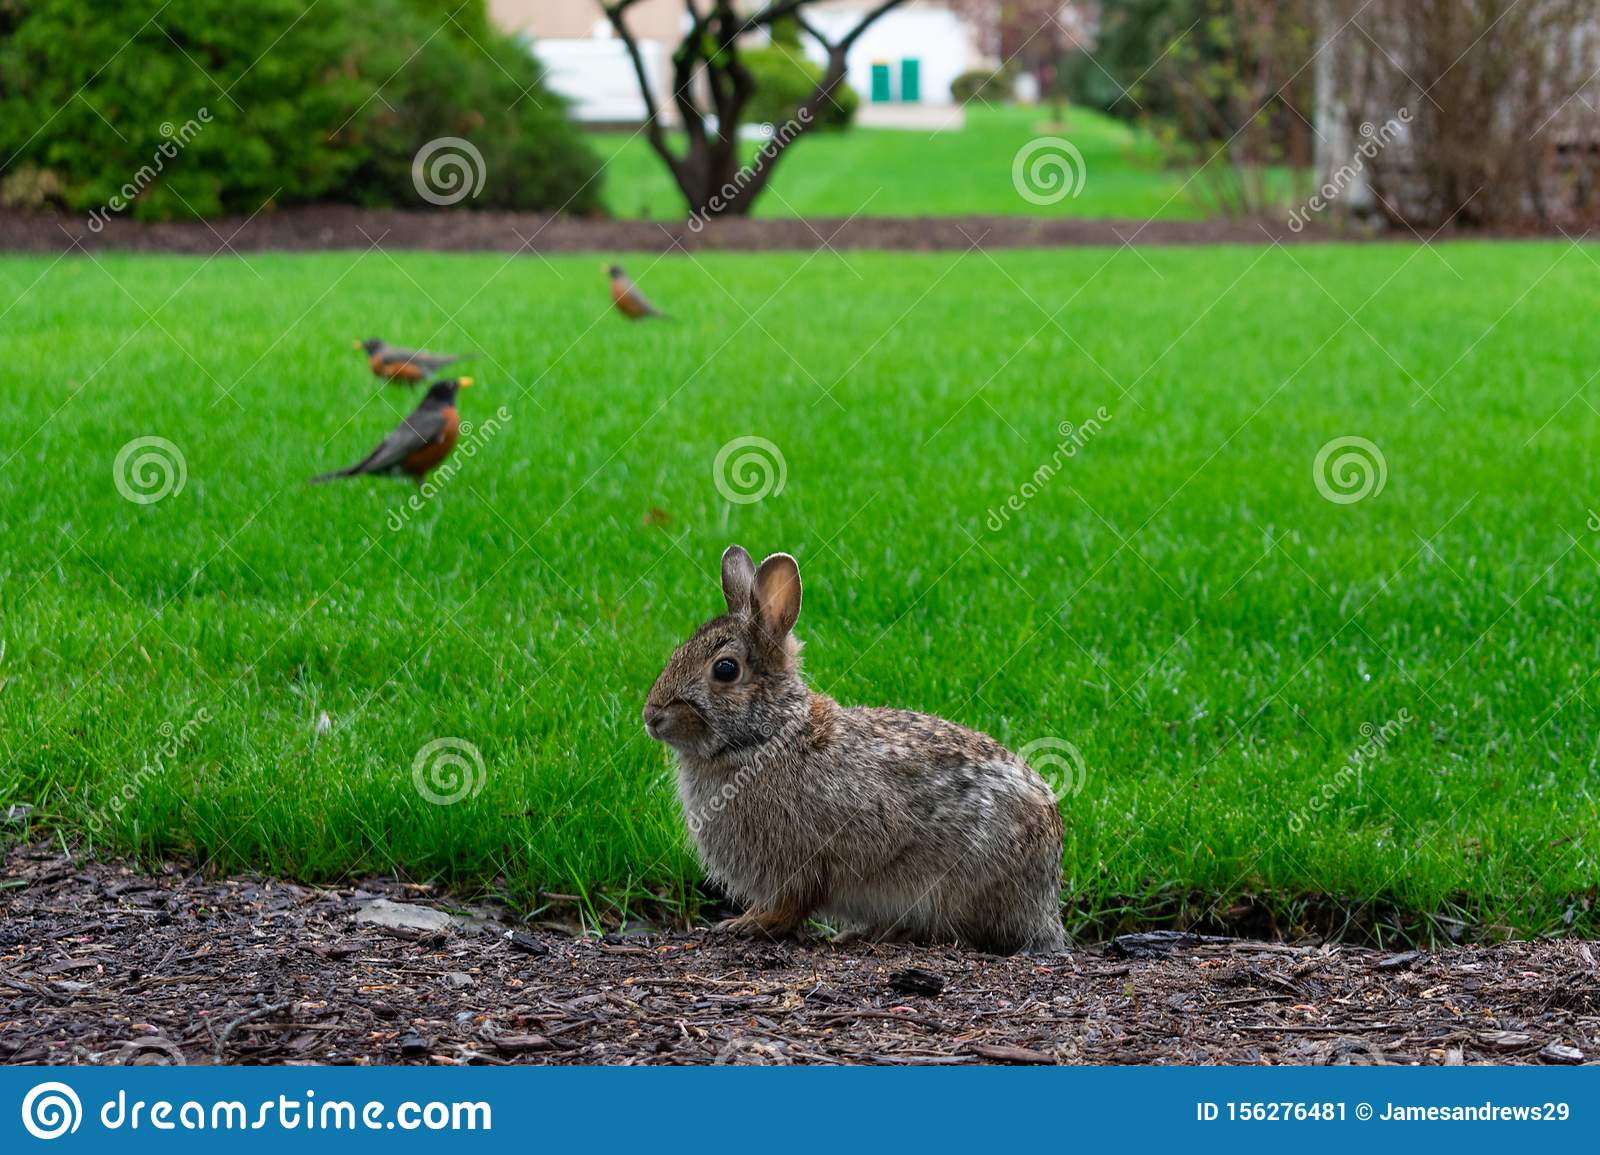 Backyard Rabbit With Robins In The Background At A ...